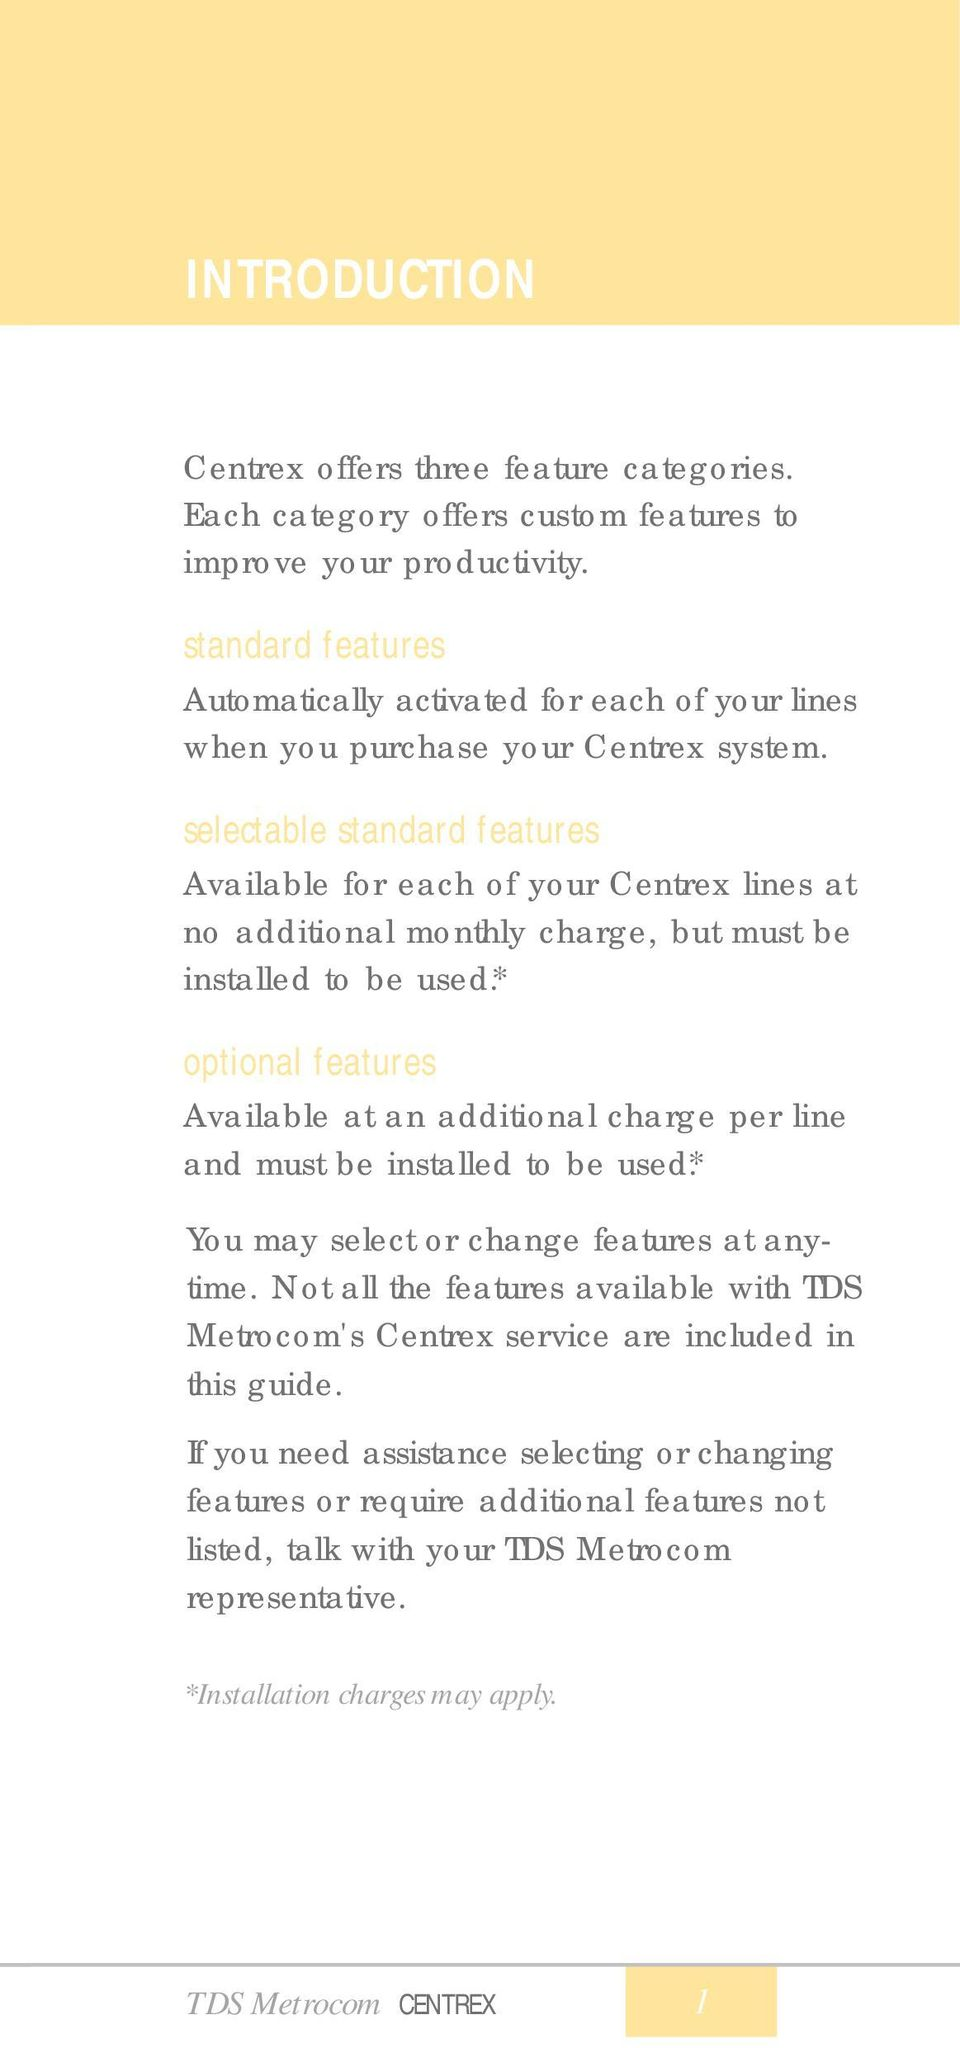 selectable standard features Available for each of your Centrex lines at no additional monthly charge, but must be installed to be used.